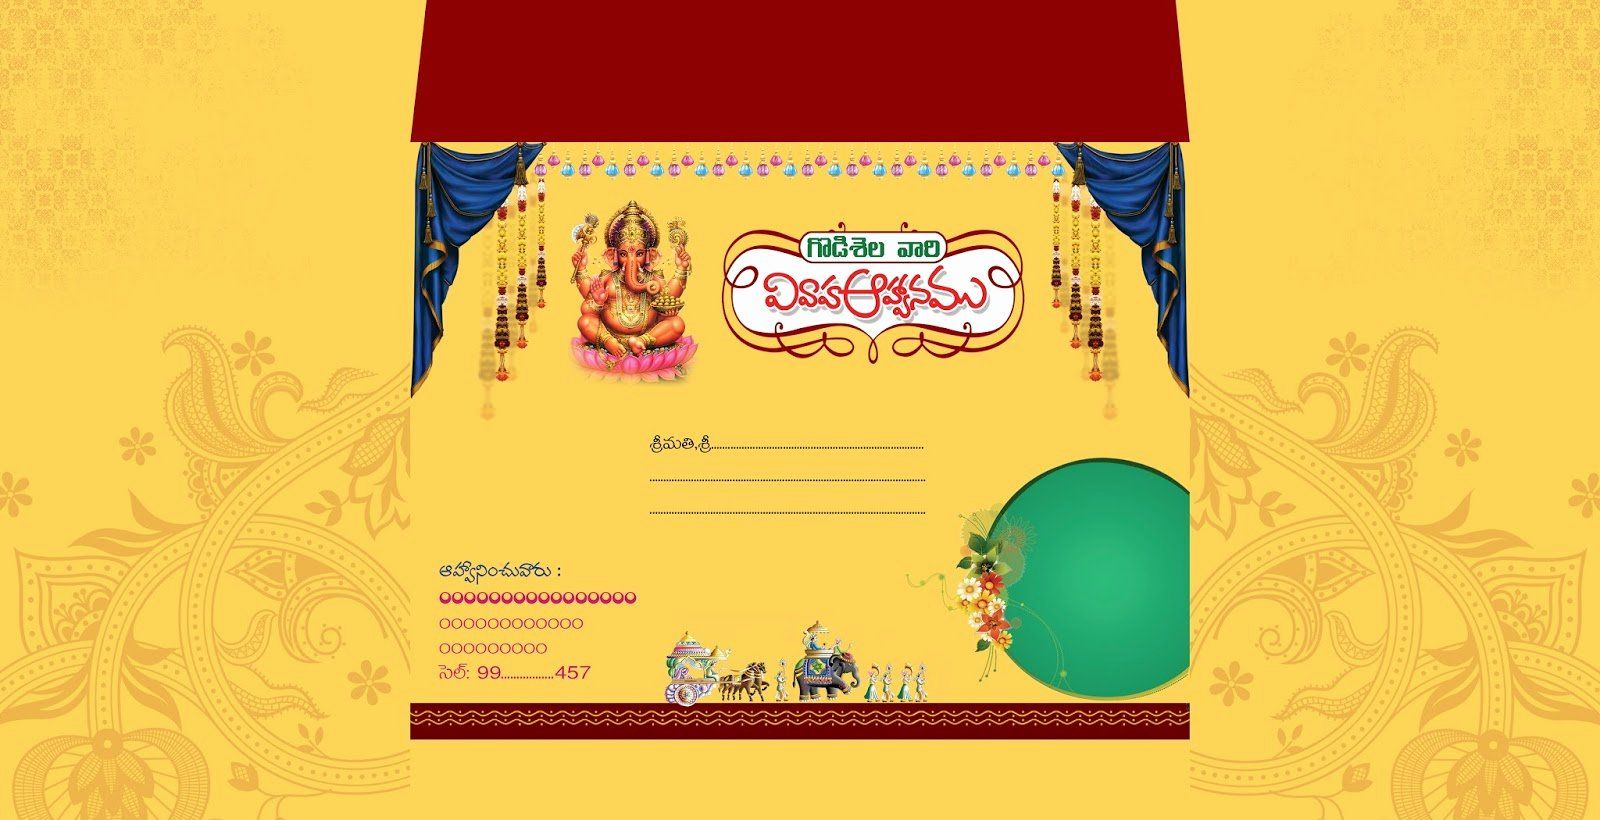 Wedding Invitations Photoshop Template Awesome Indian Wedding Car Indian Wedding Invitation Cards Wedding Invitation Card Design Hindu Wedding Invitation Cards